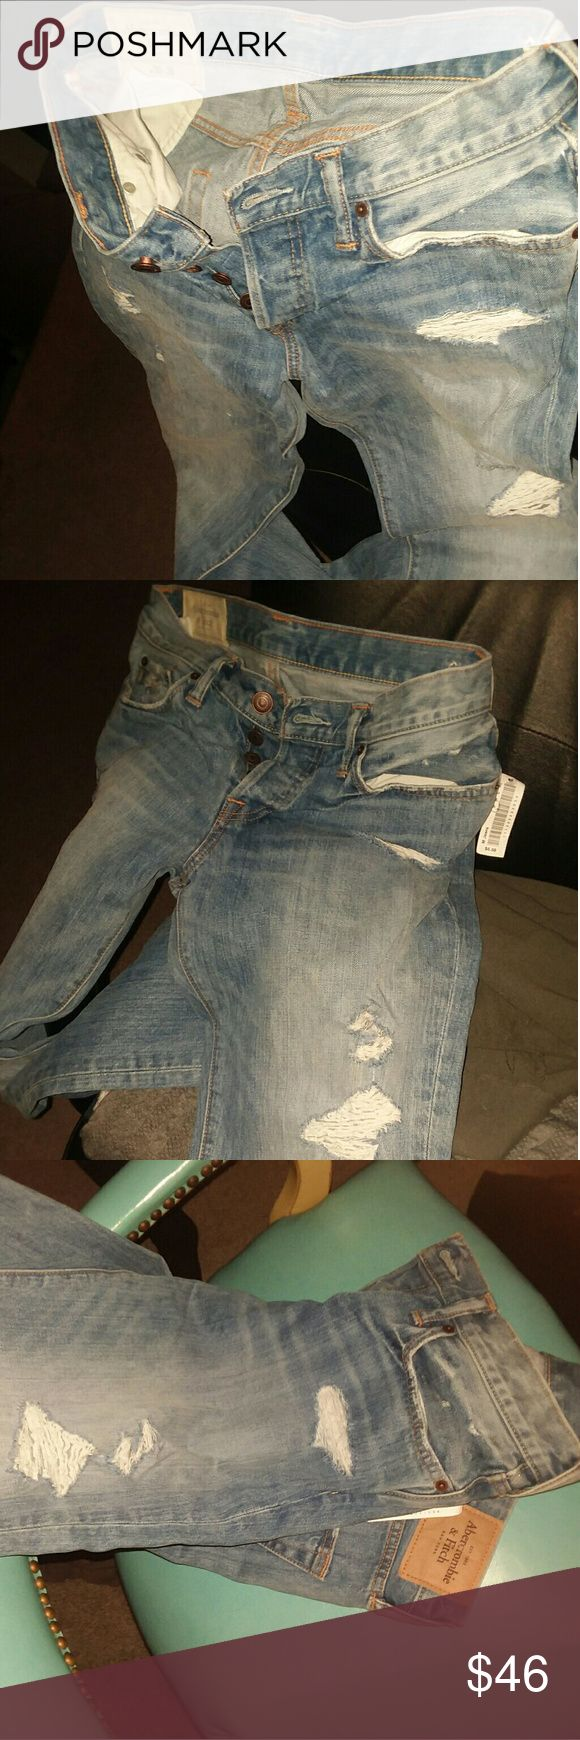 30`30W Mens AbercrombieFitch ClassicStraight Jeans Perfect Condition Like New with Unoriginal Tags Abercrombie & Fitch Jeans Straight